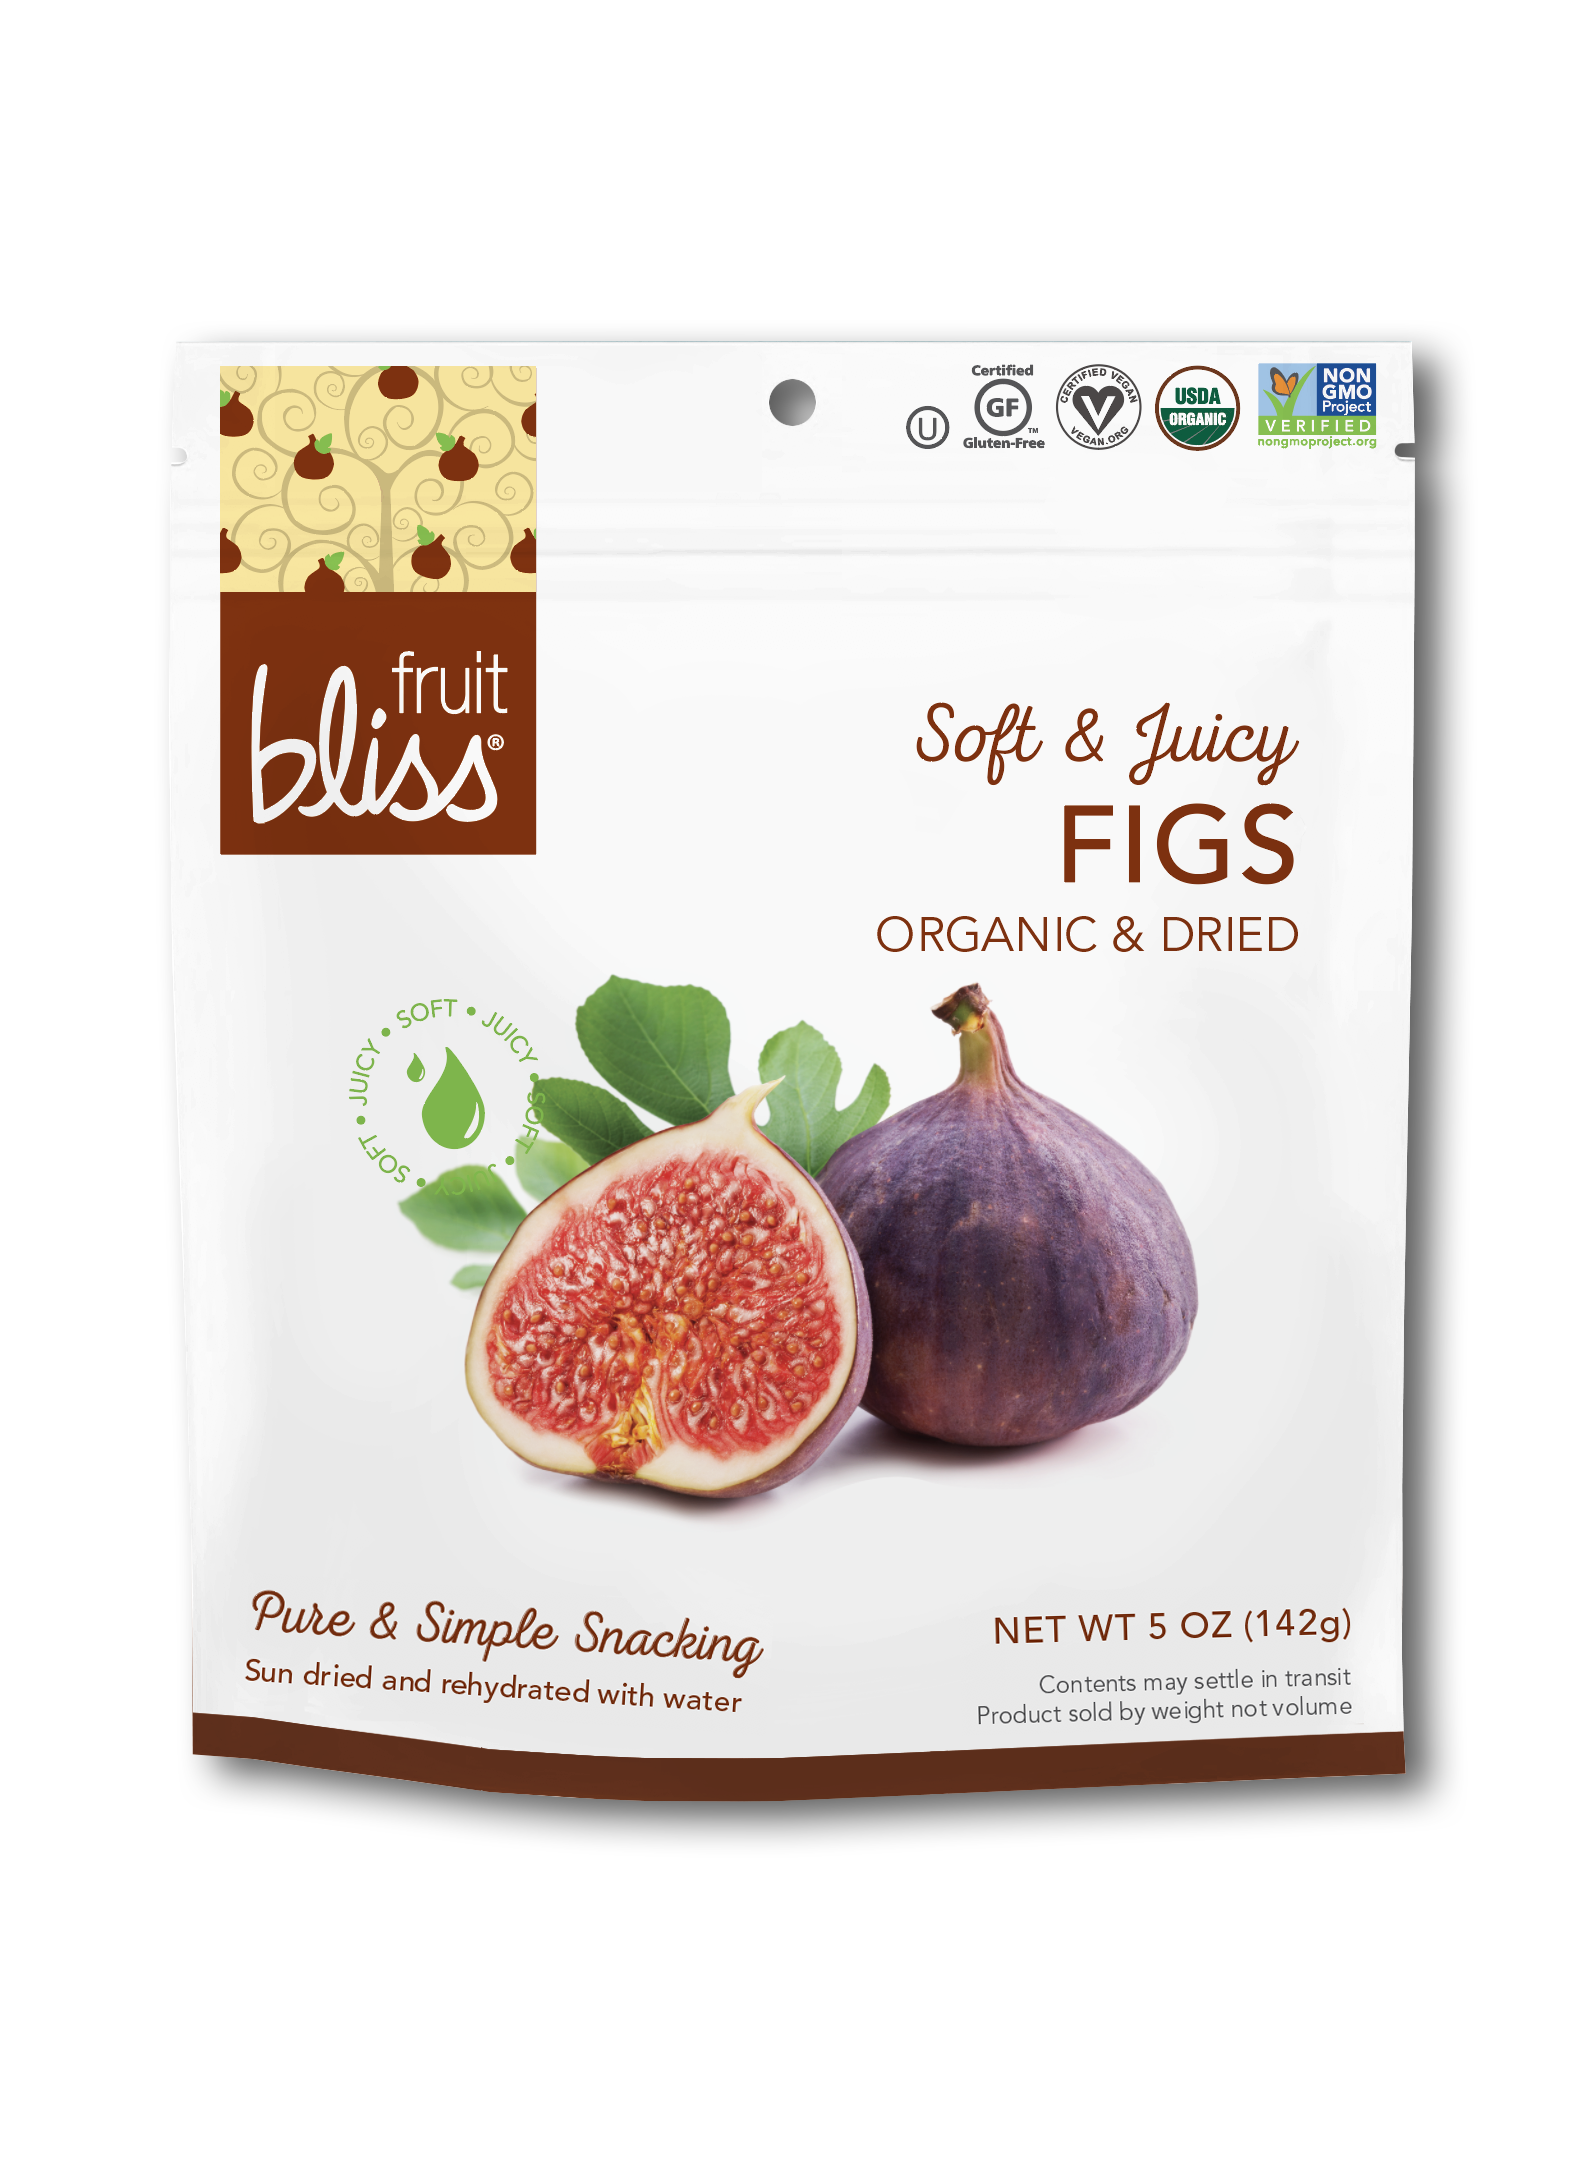 Organic & Dried Figs(4 oz)